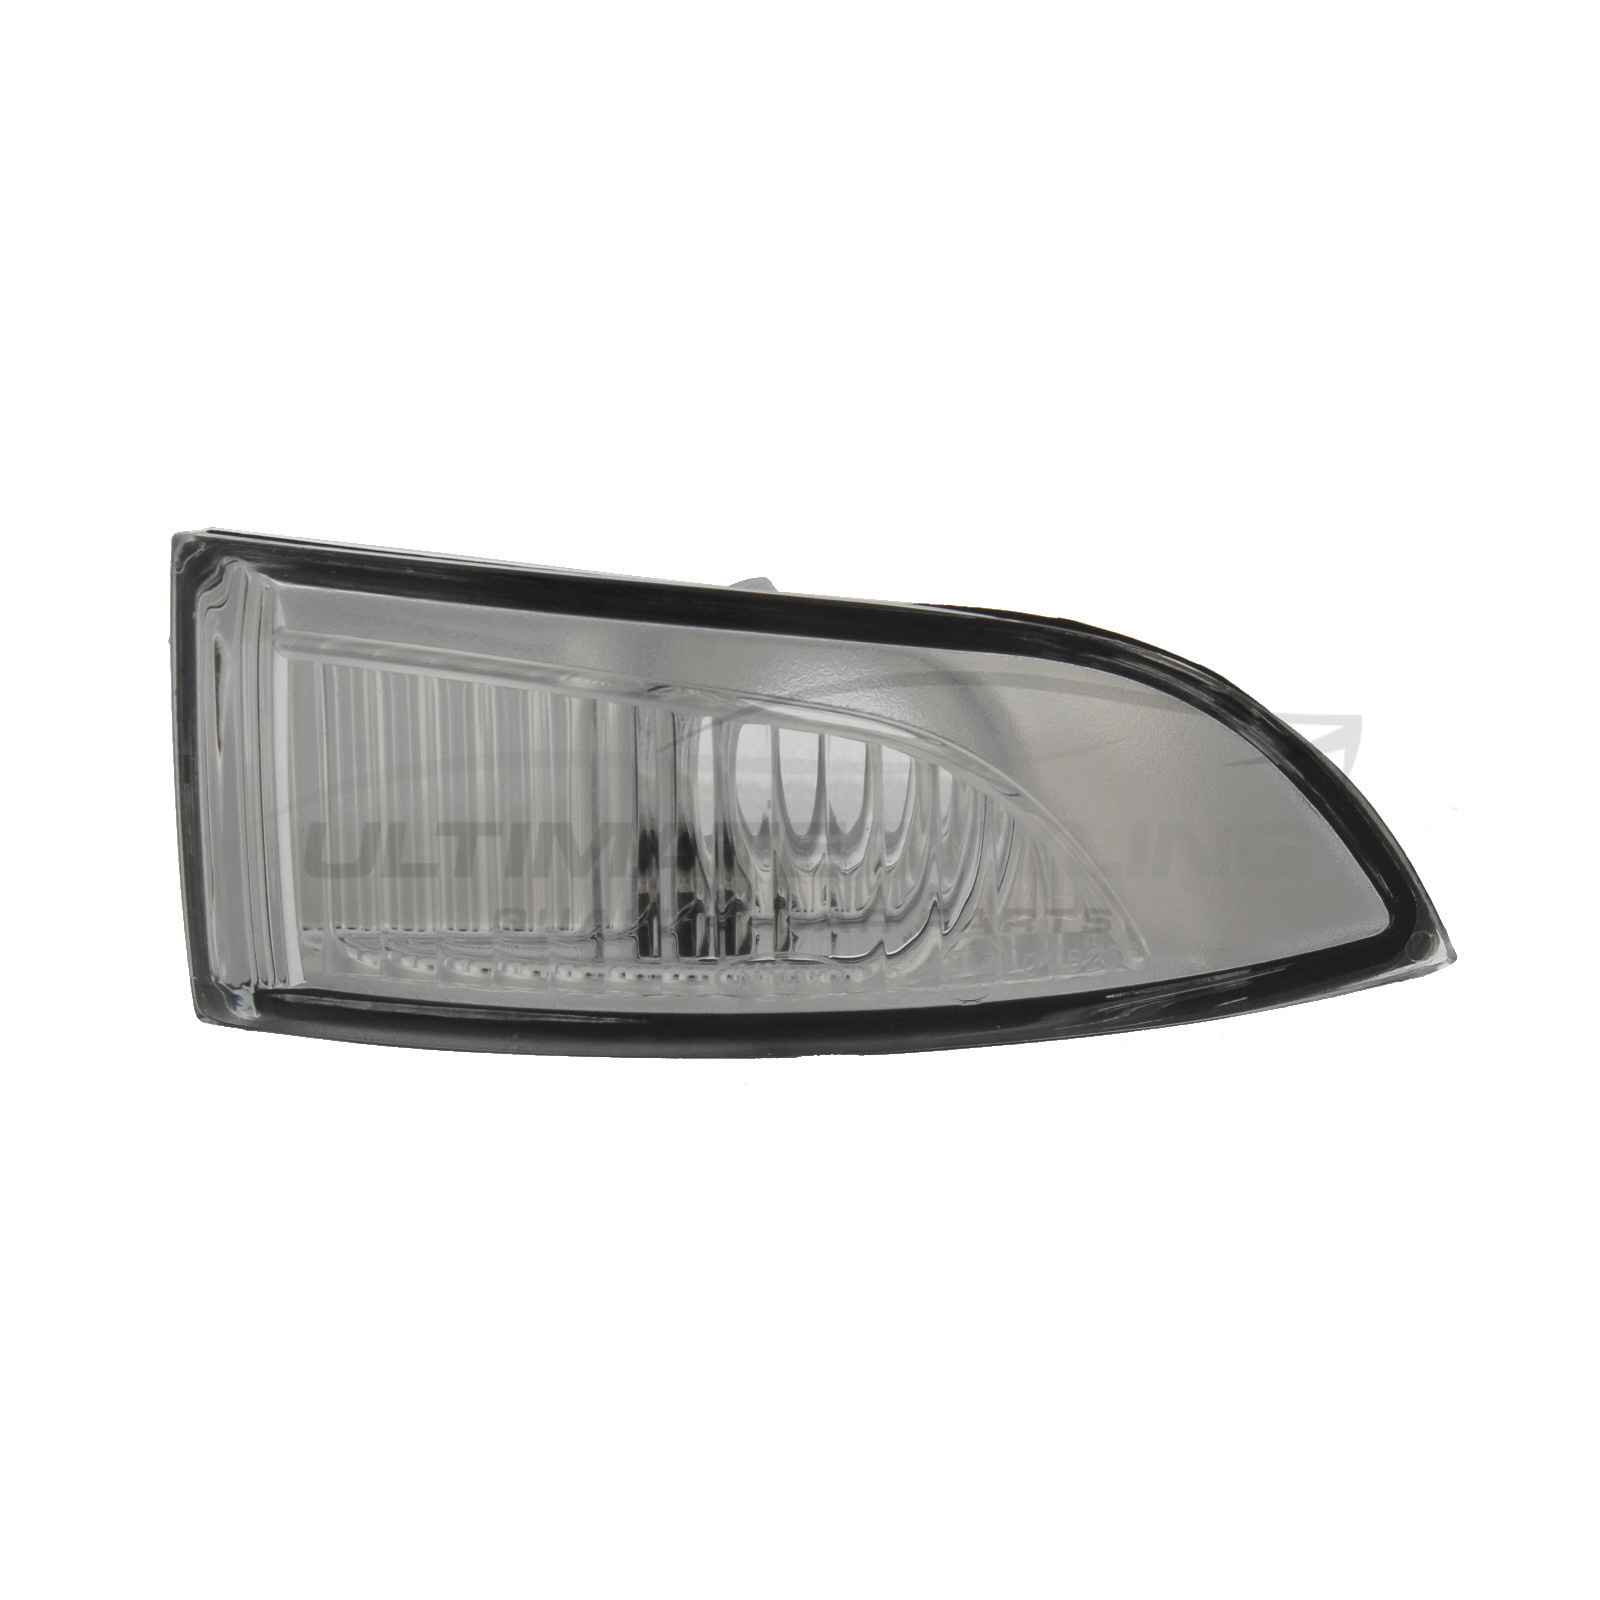 Mirror Indicator for Renault Laguna